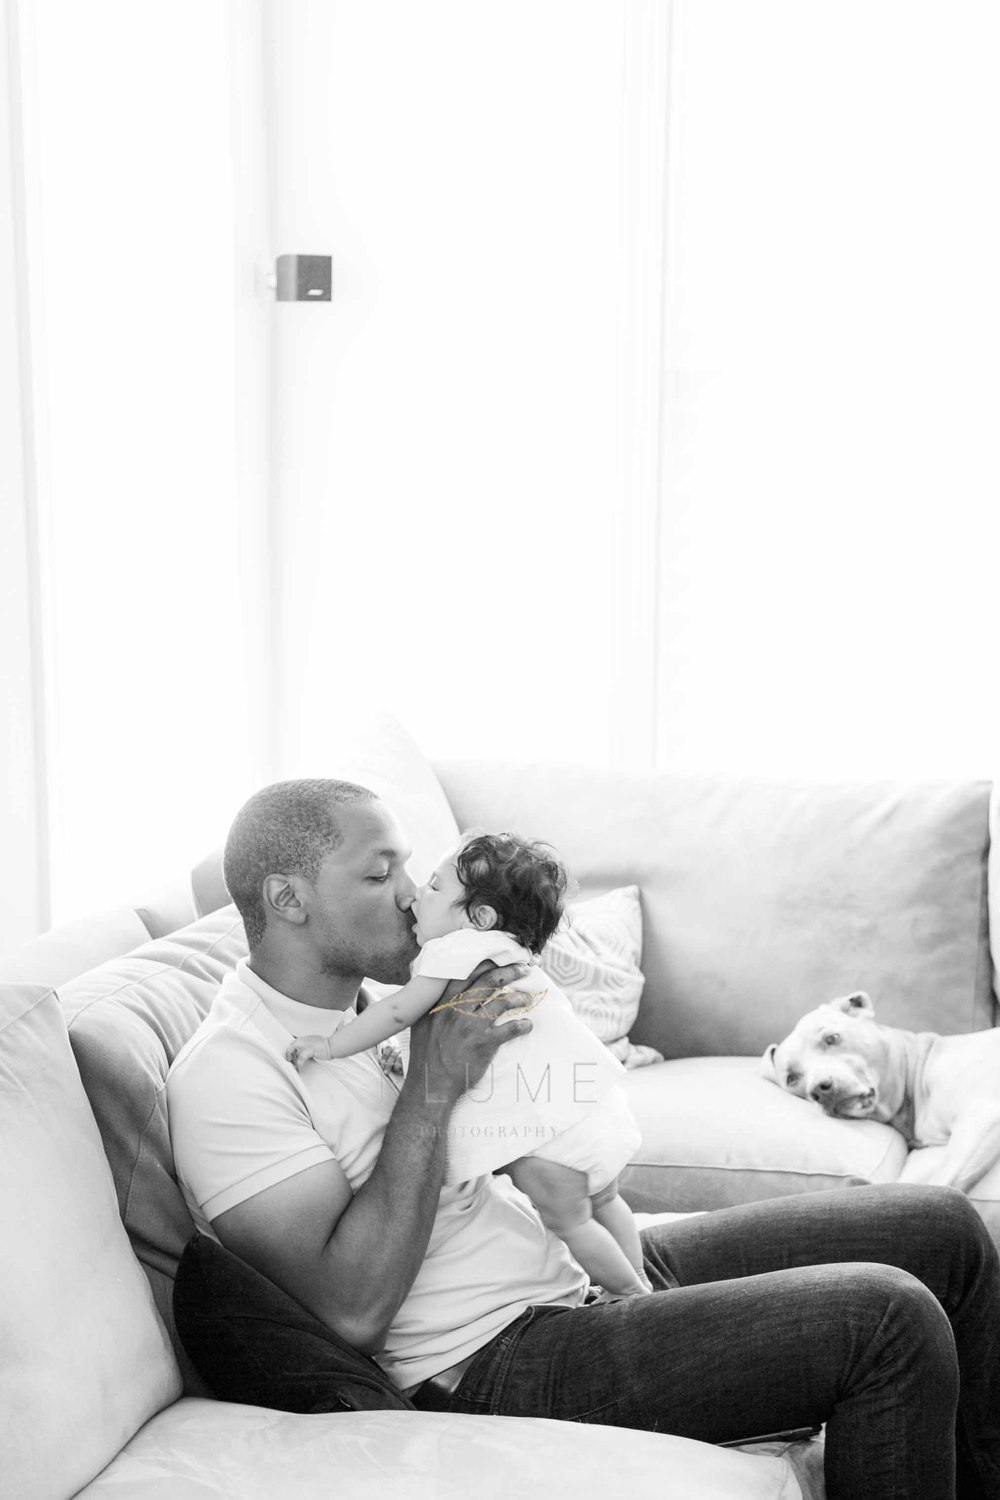 family and newborn photo session in Arlington, VA; Jabril, Laura, Leif and Logan, Thursday, July 30, 2015. Photo by Amanda Reynolds, Plume Photography